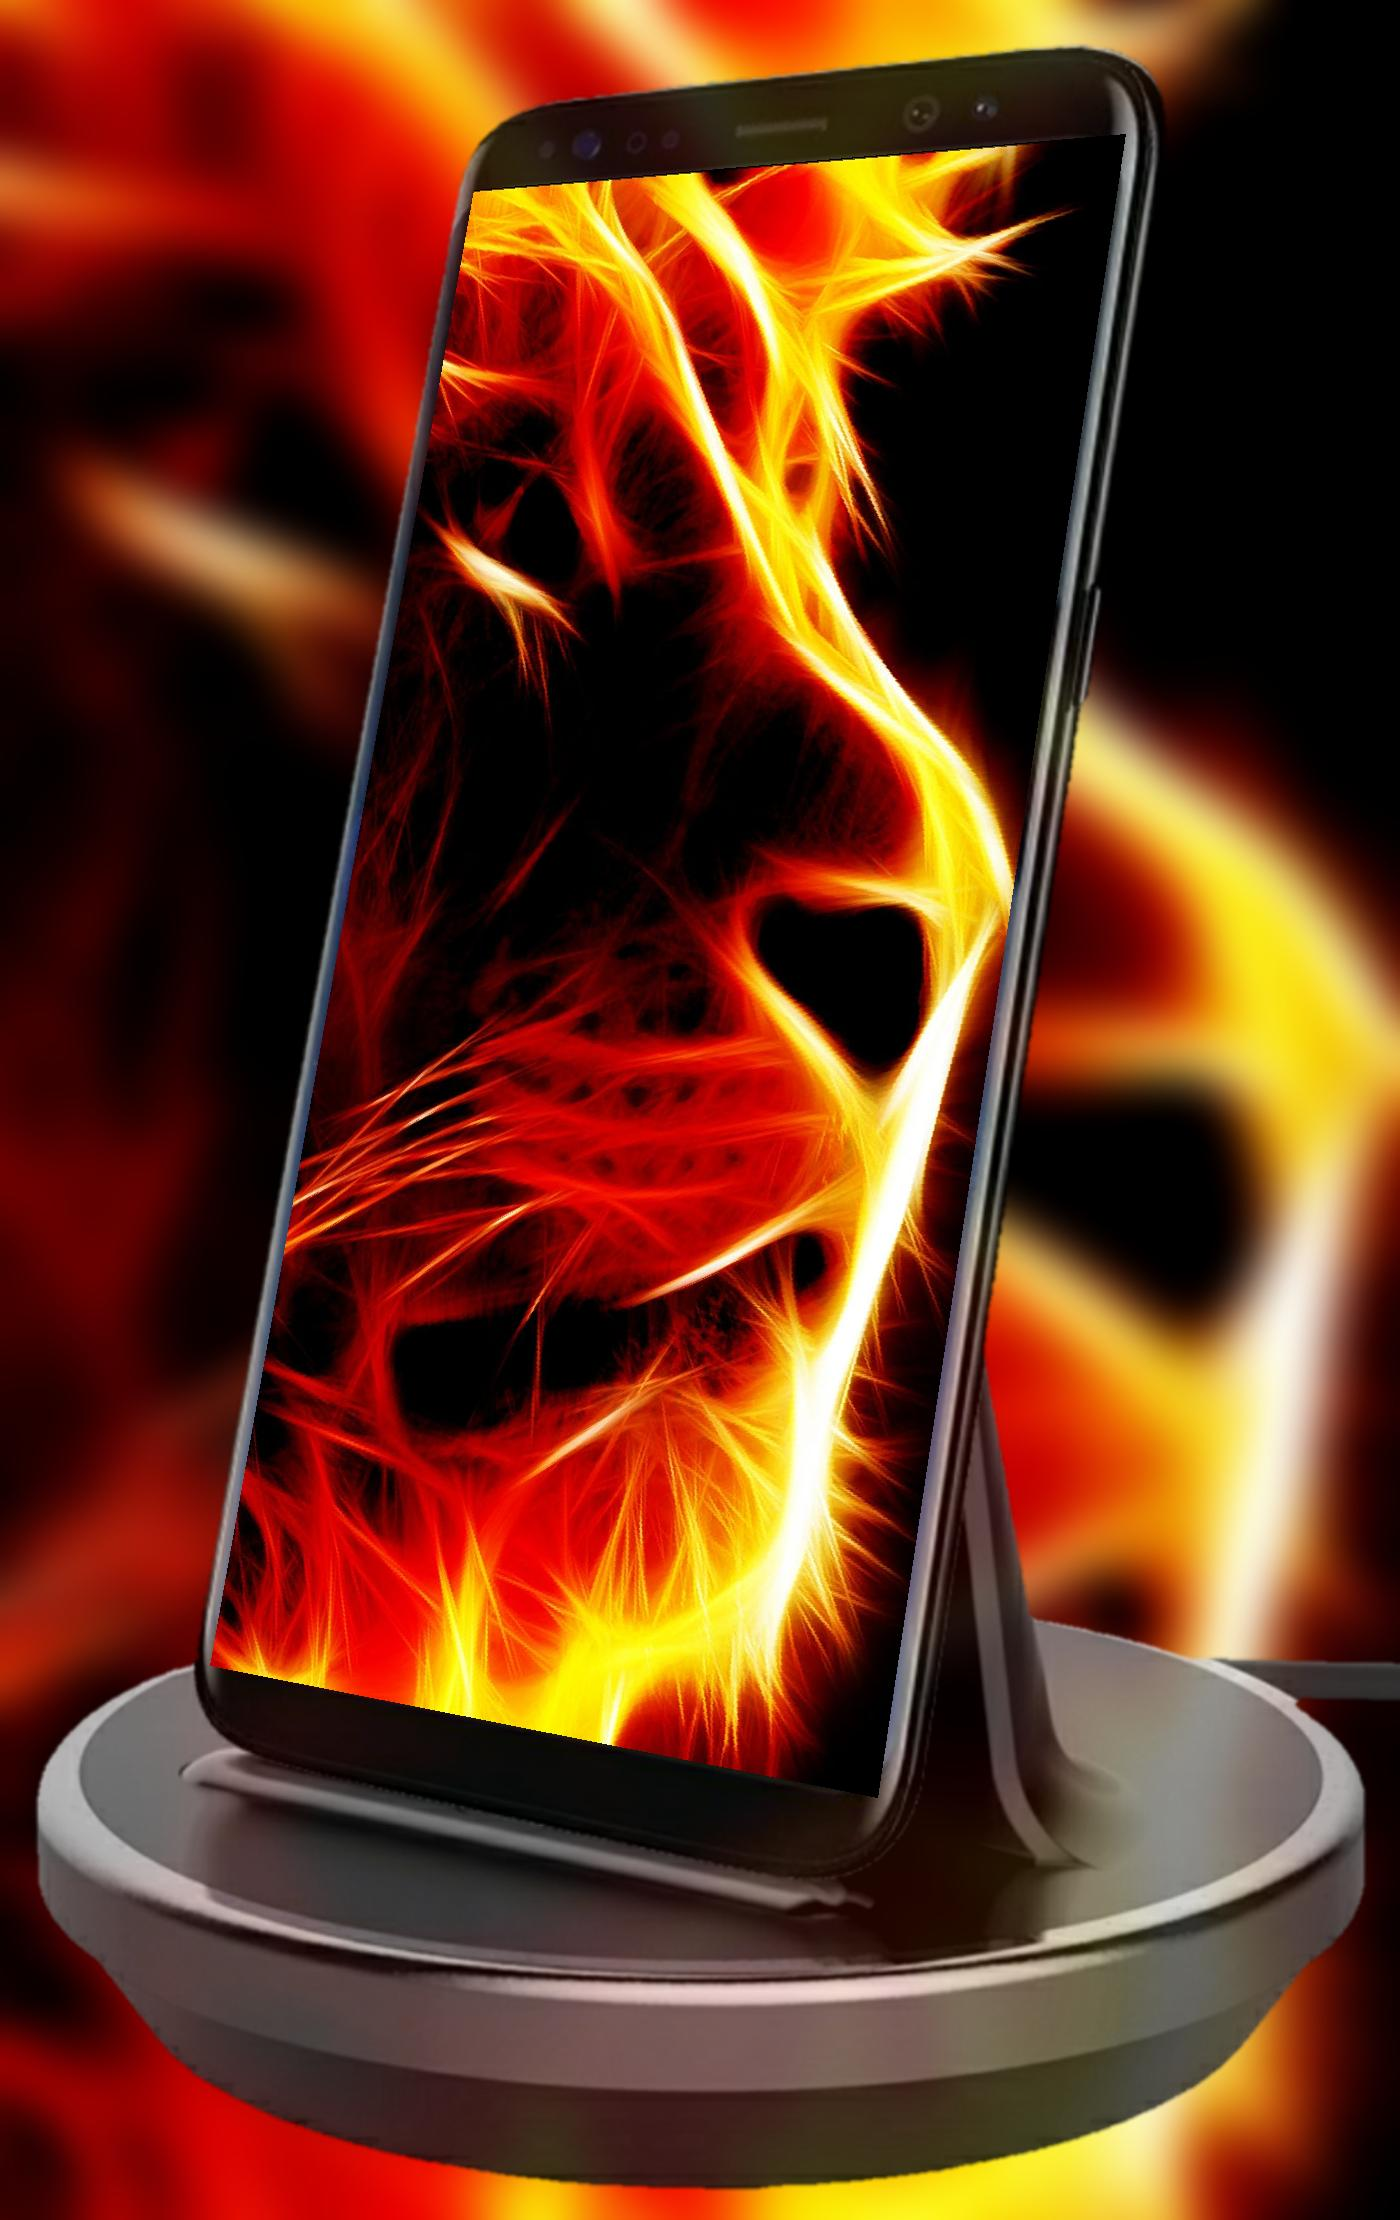 Cool Fire Wallpapers